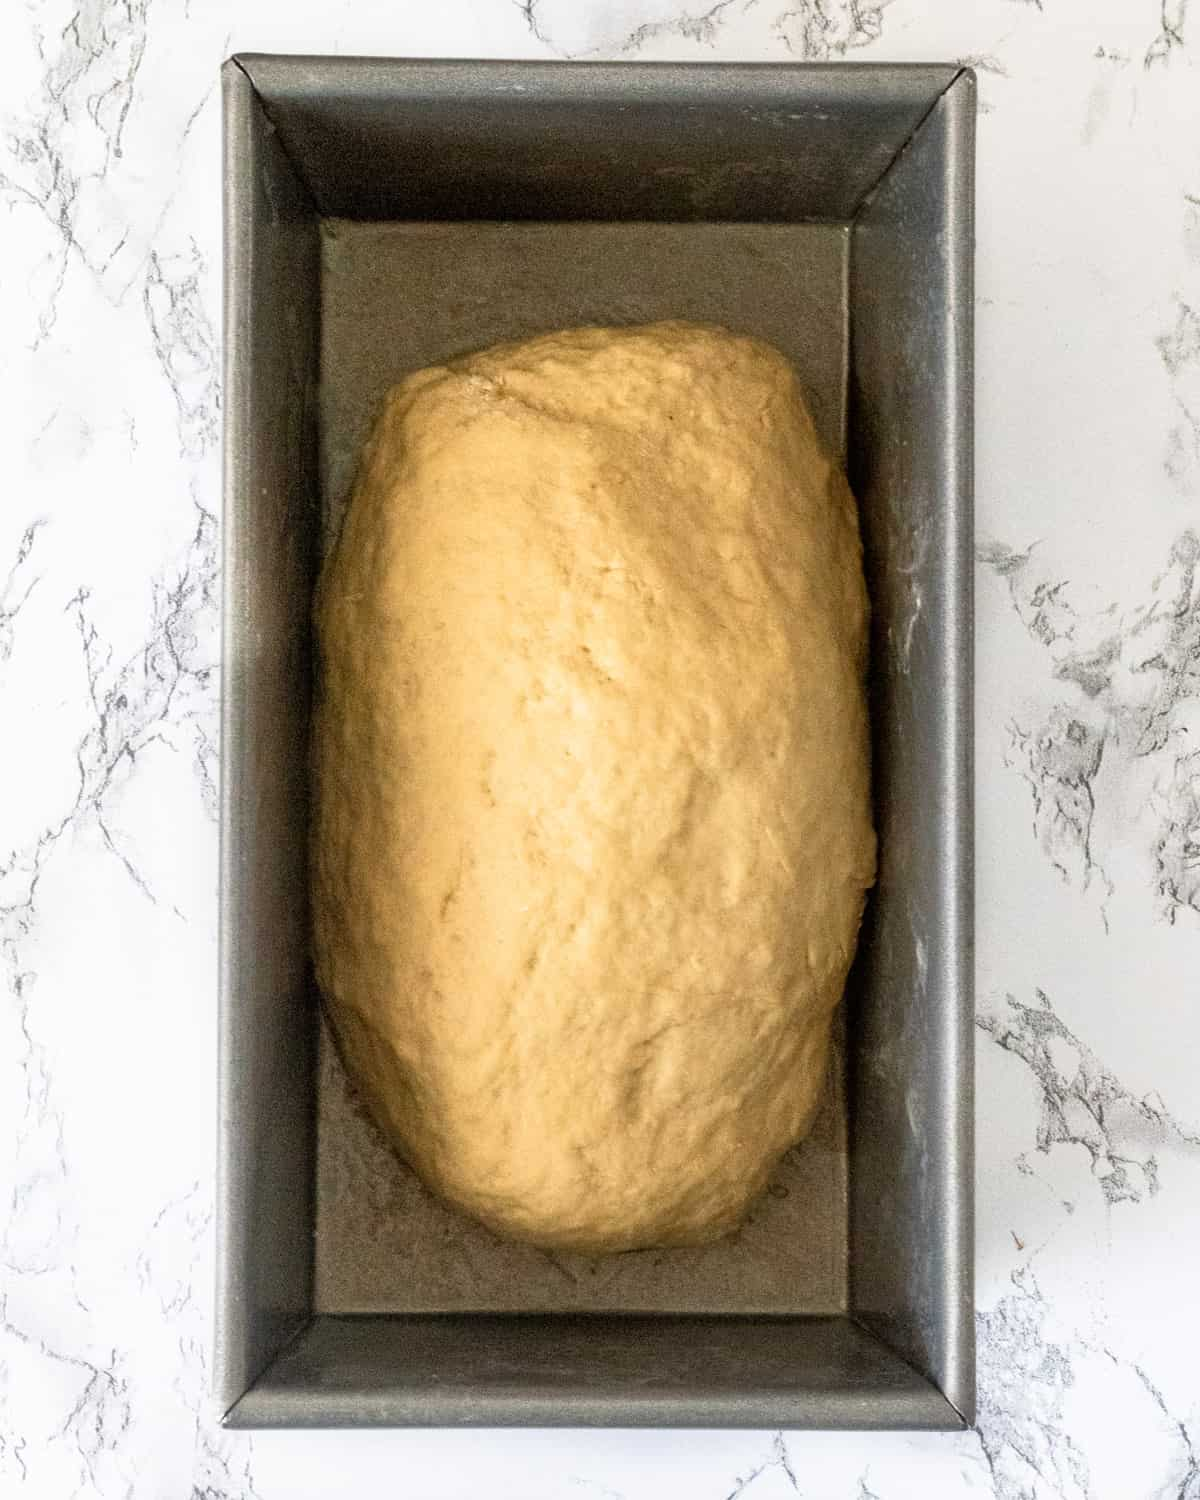 A loaf of honey wheat bread dough in a pan.